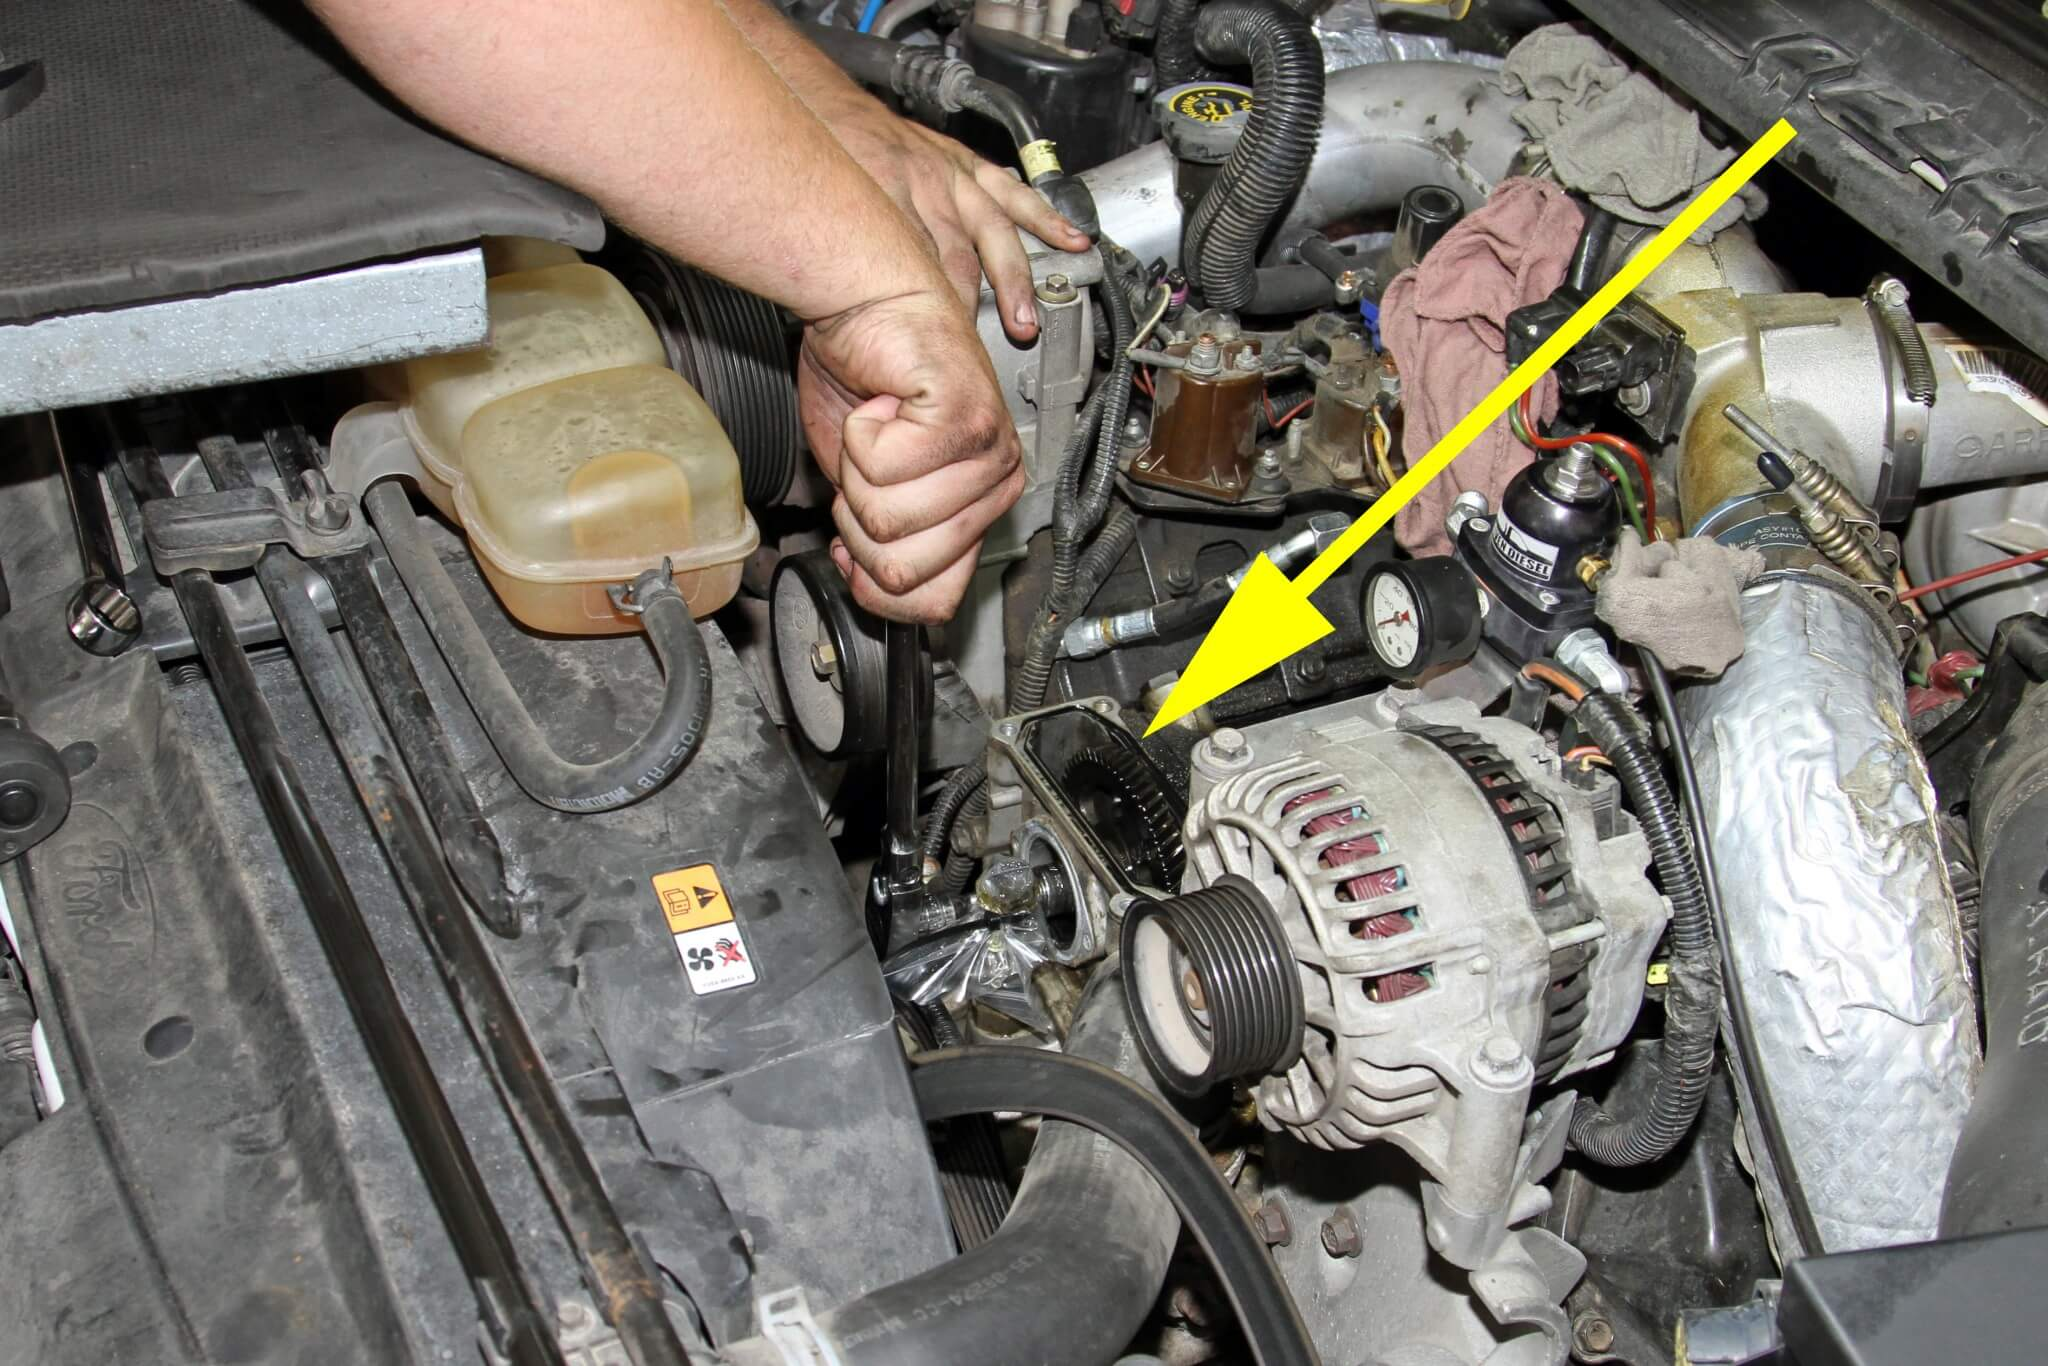 15. The HPOP drive gear bolt may require a significant amount of force to be removed. It's also a tight fit with the socket and ratchet between the coolant fitting and gear housing, as seen here.